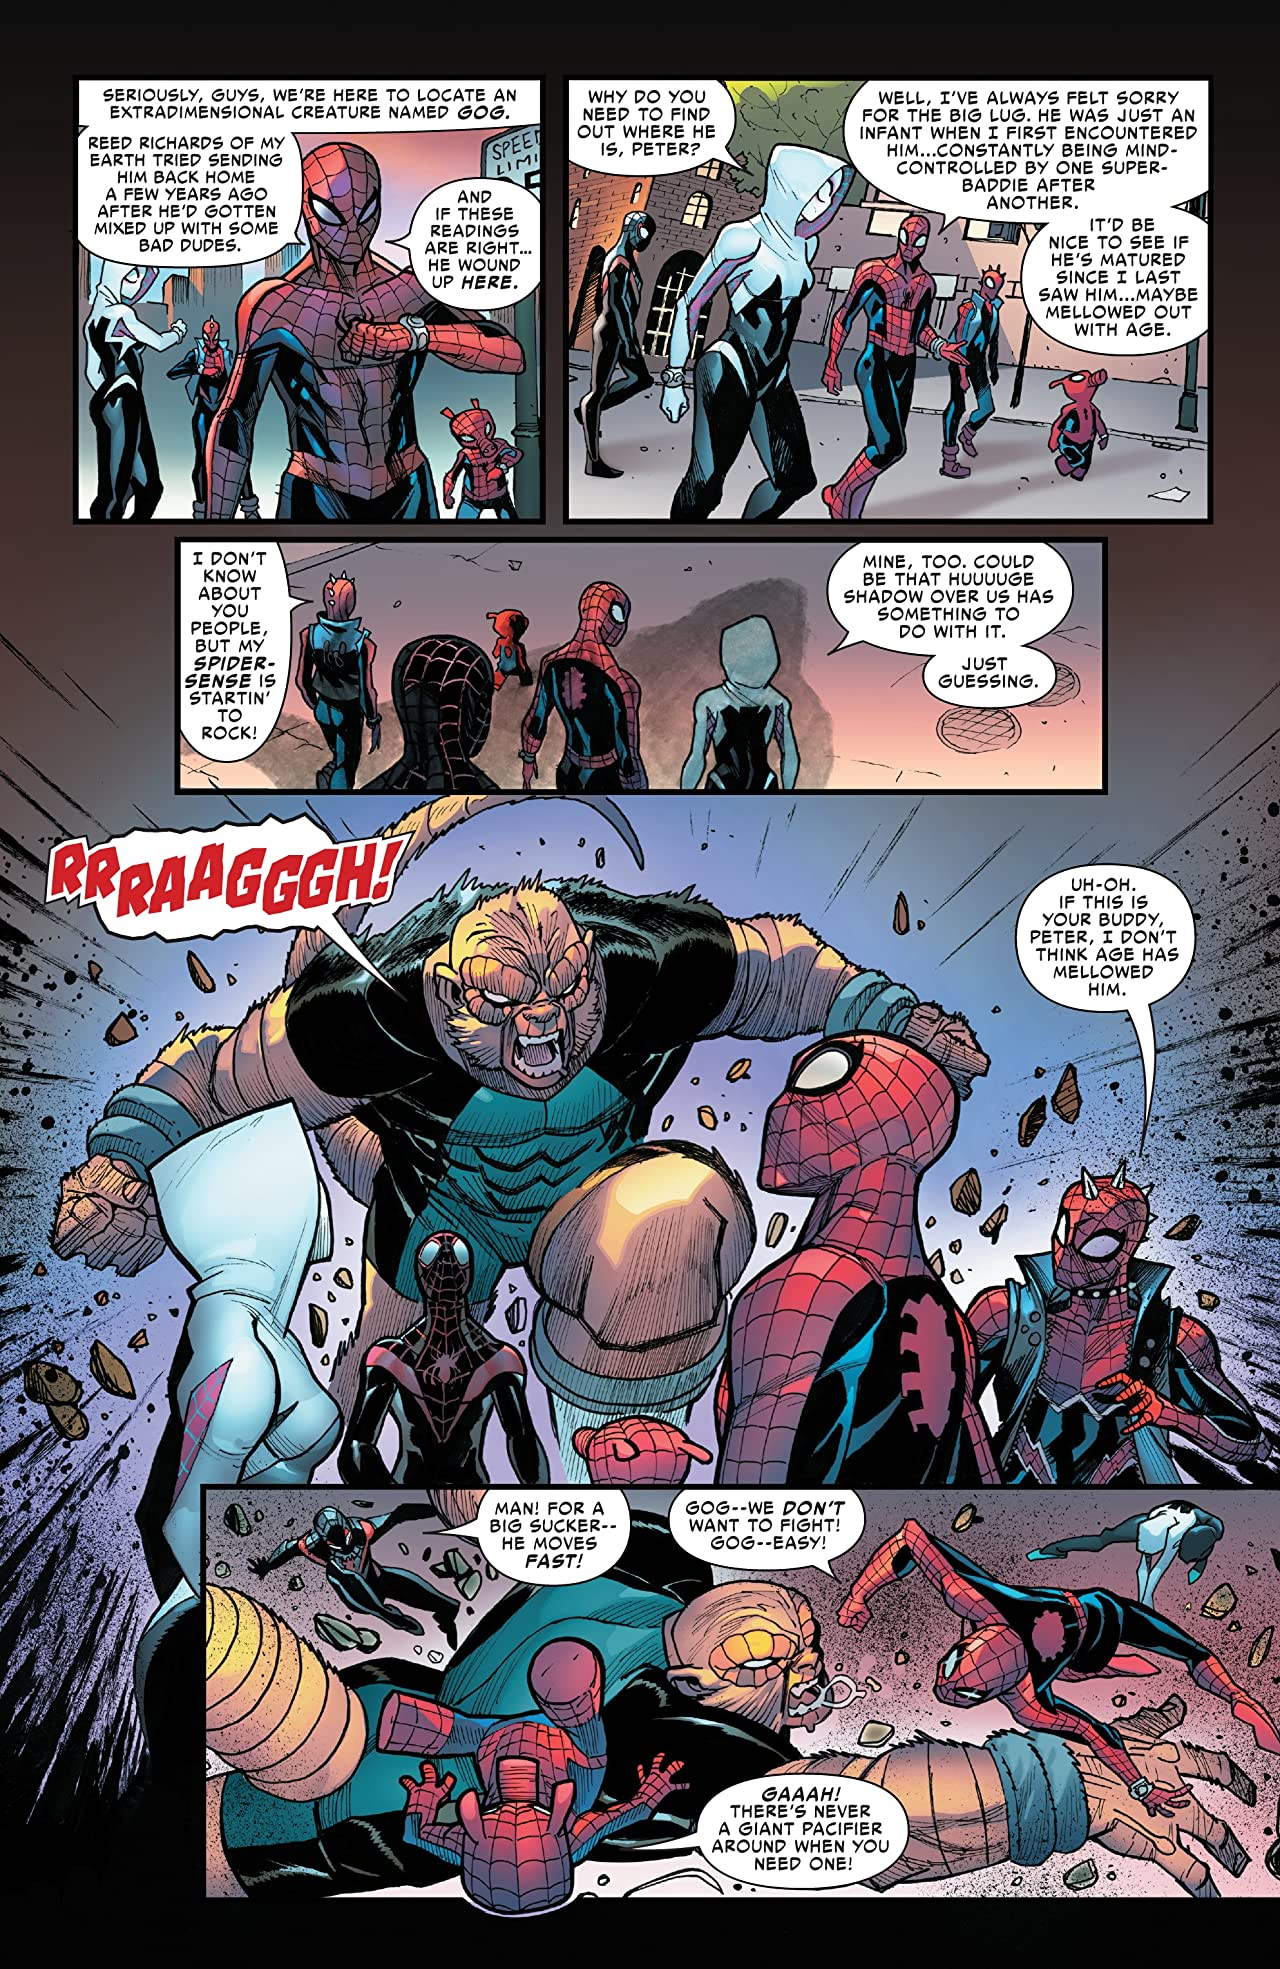 Spider-Man: Enter The Spider-Verse (2018) #1